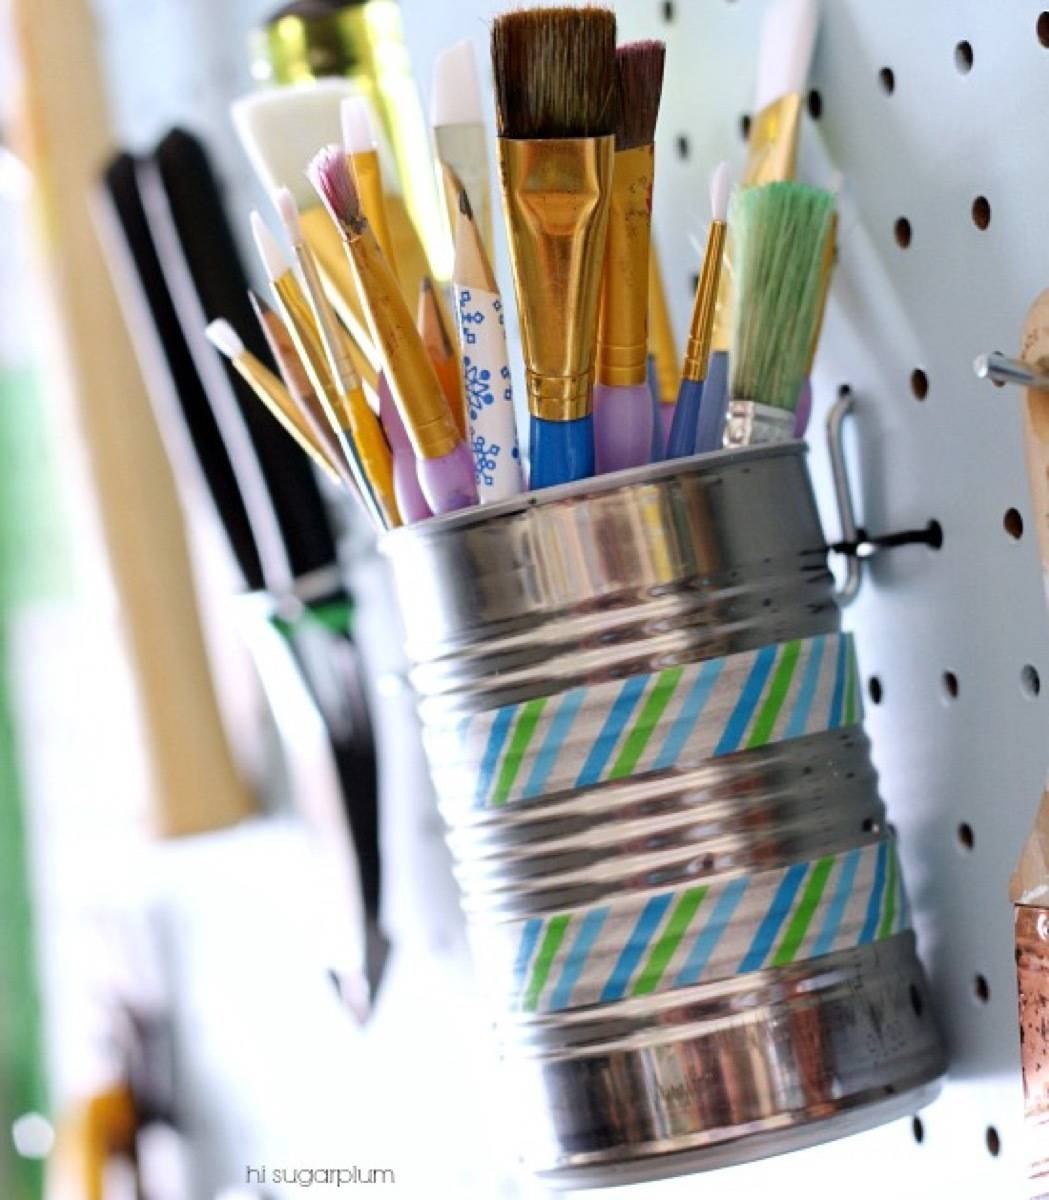 Use tin cans to organize supplies | 72 Organization Tips and Projects for Every Space in Your Home